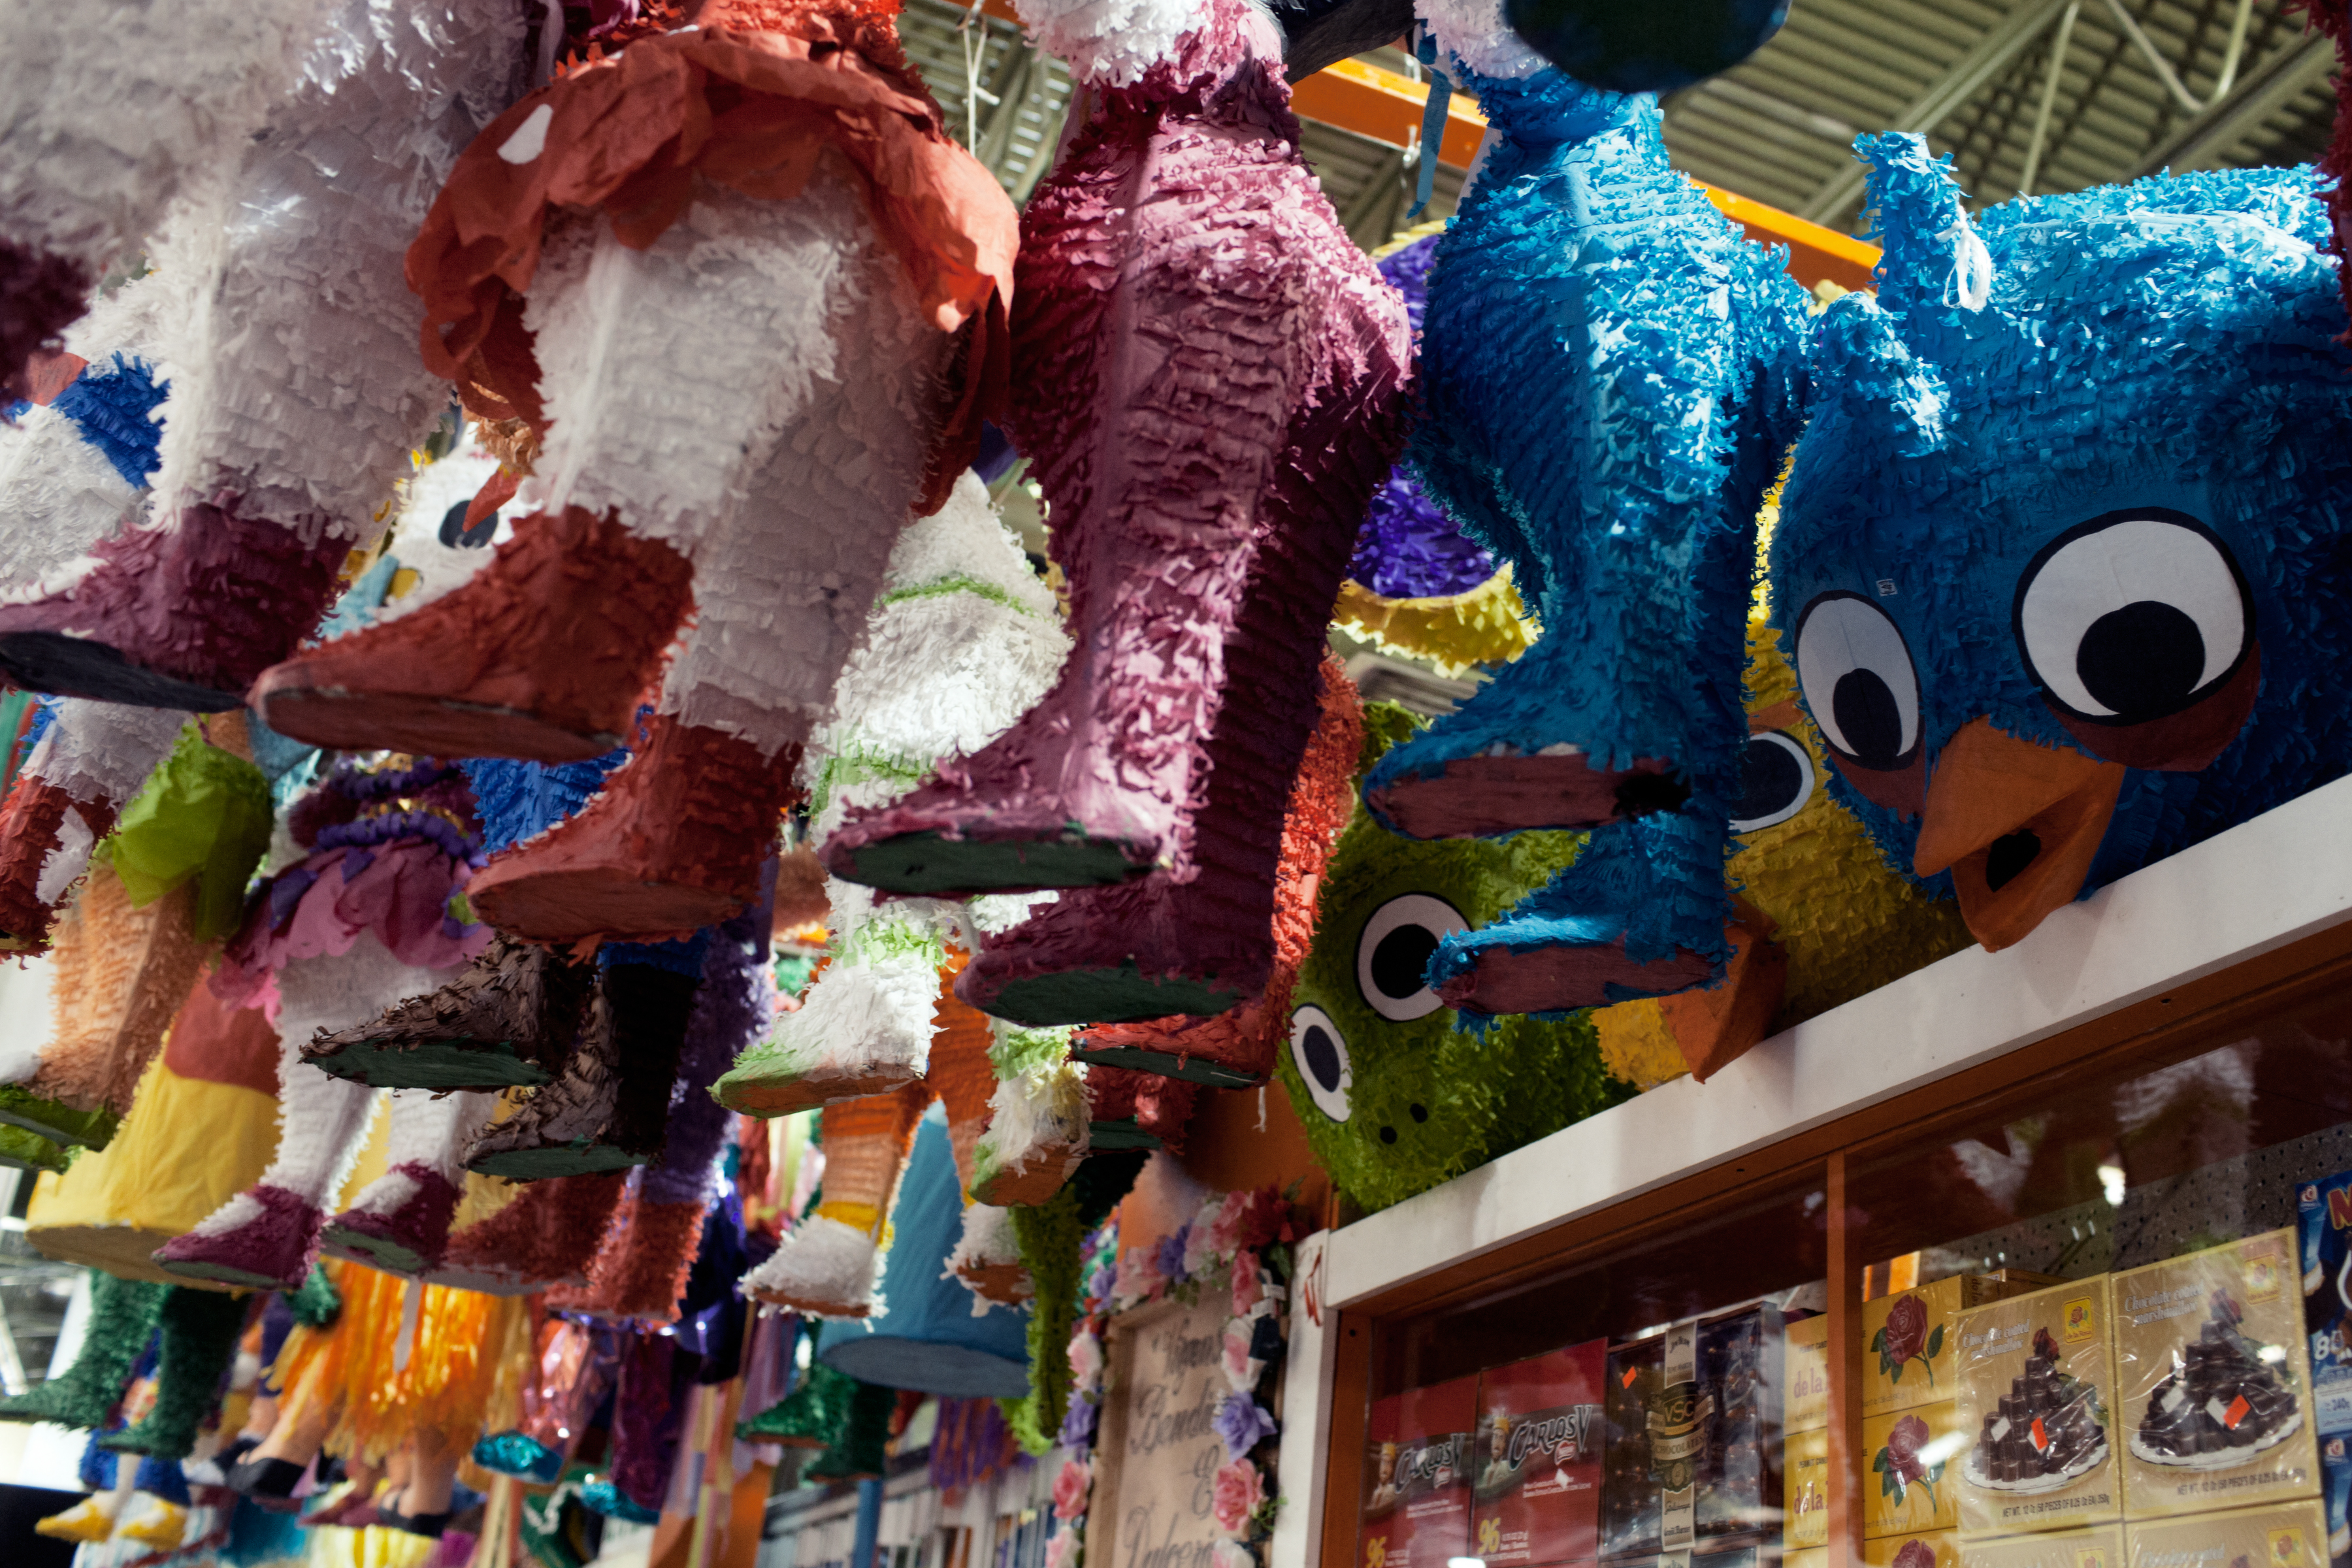 Piñatas hang from the ceiling in a store at the mall.